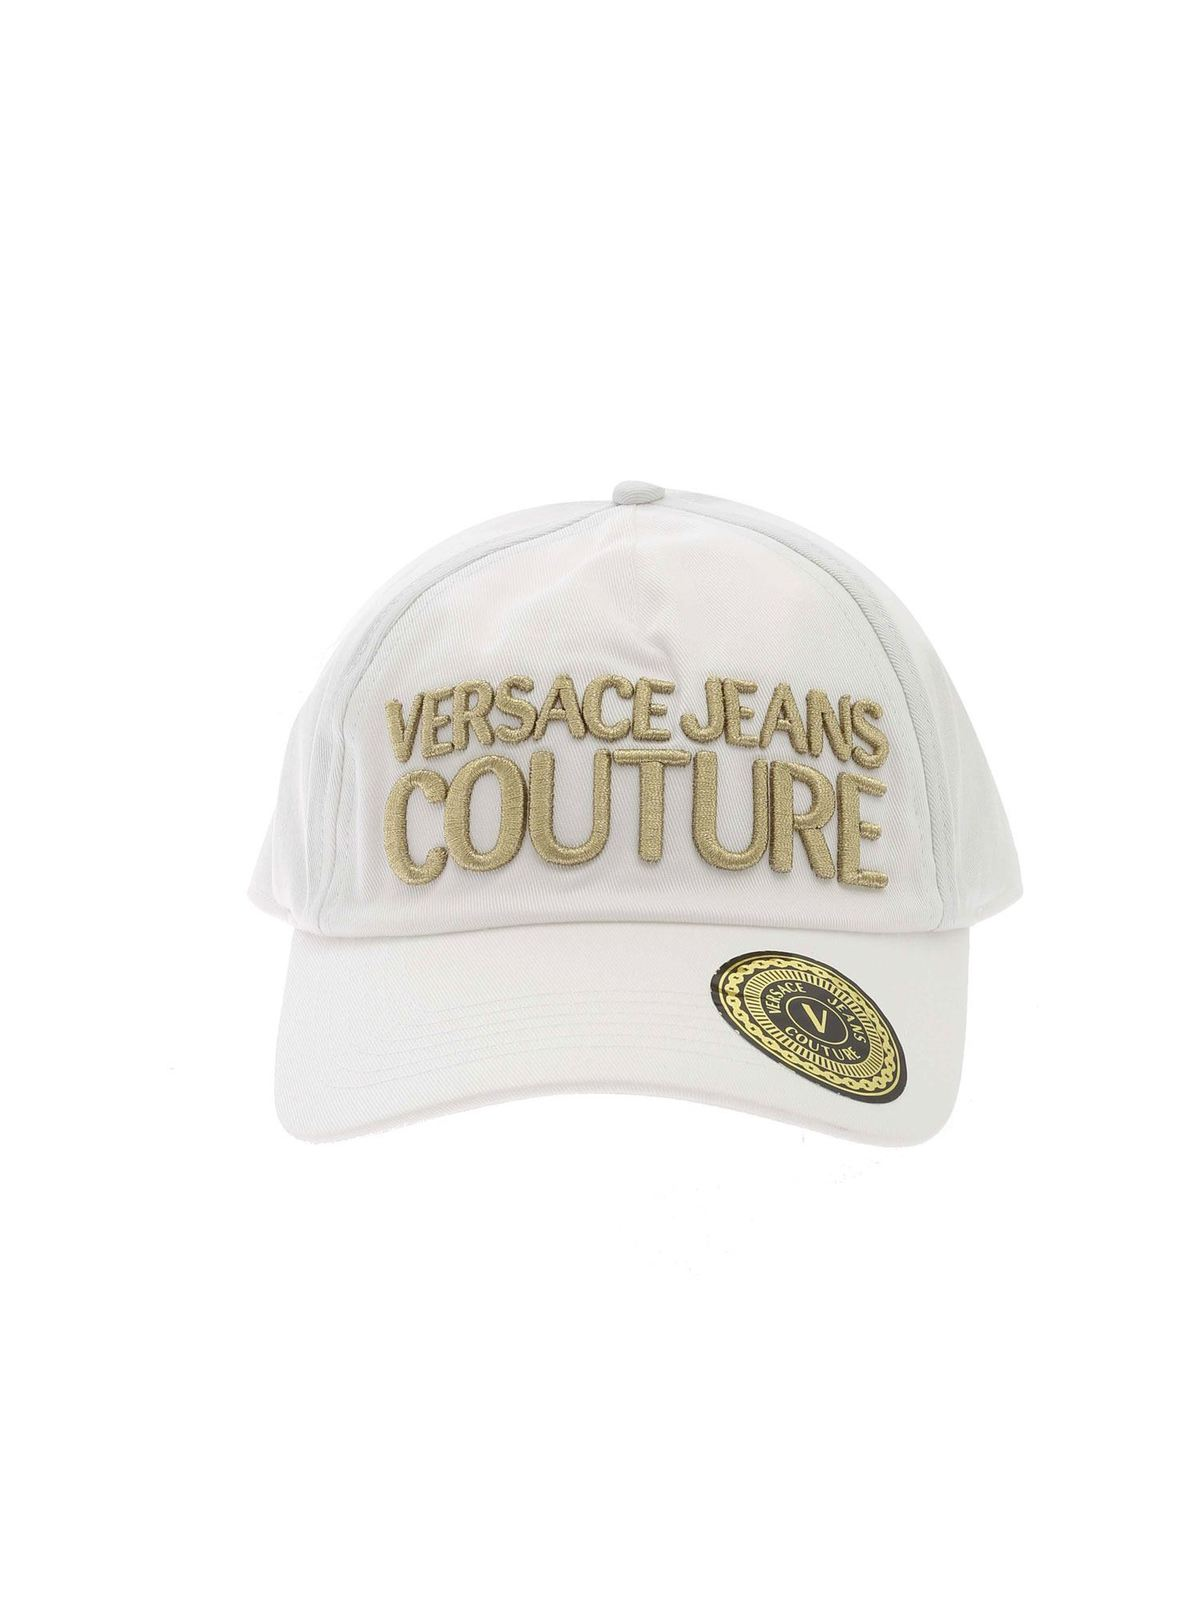 Versace Jeans Couture BASEBALL CAP IN WHITE